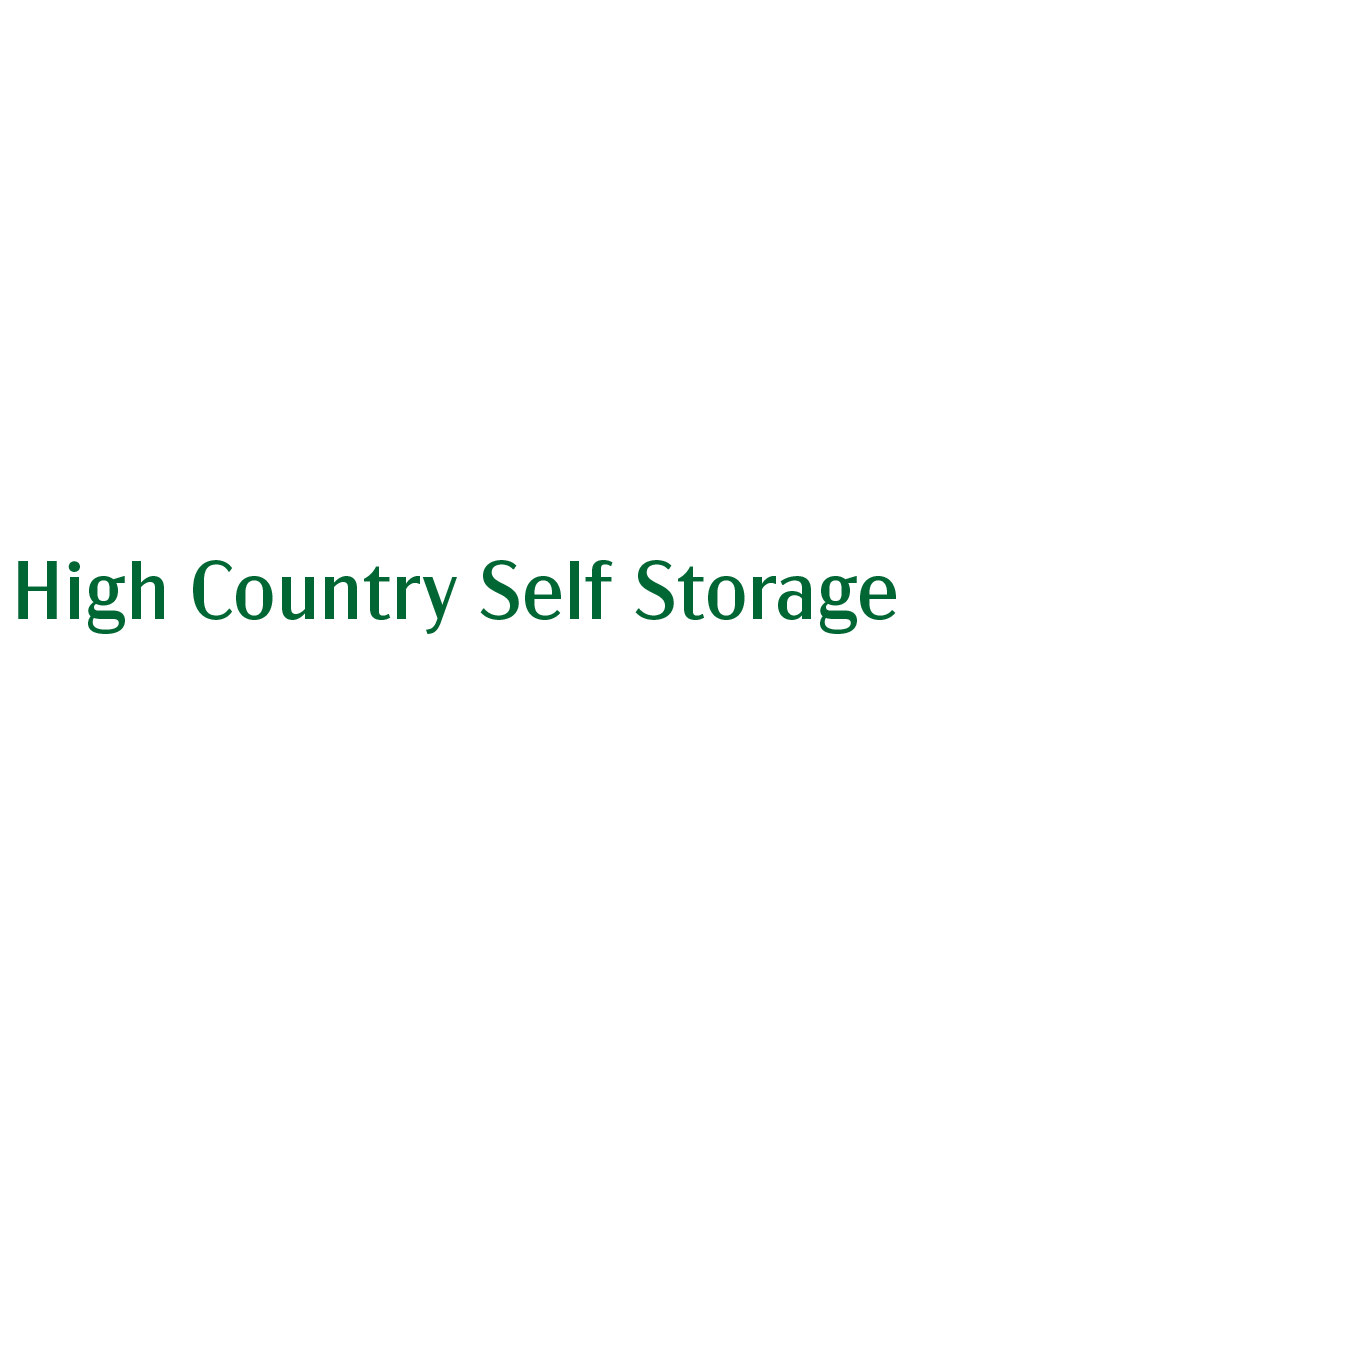 High Country Self Storage - Baldwinsville, NY 13027 - (315)259-1500 | ShowMeLocal.com